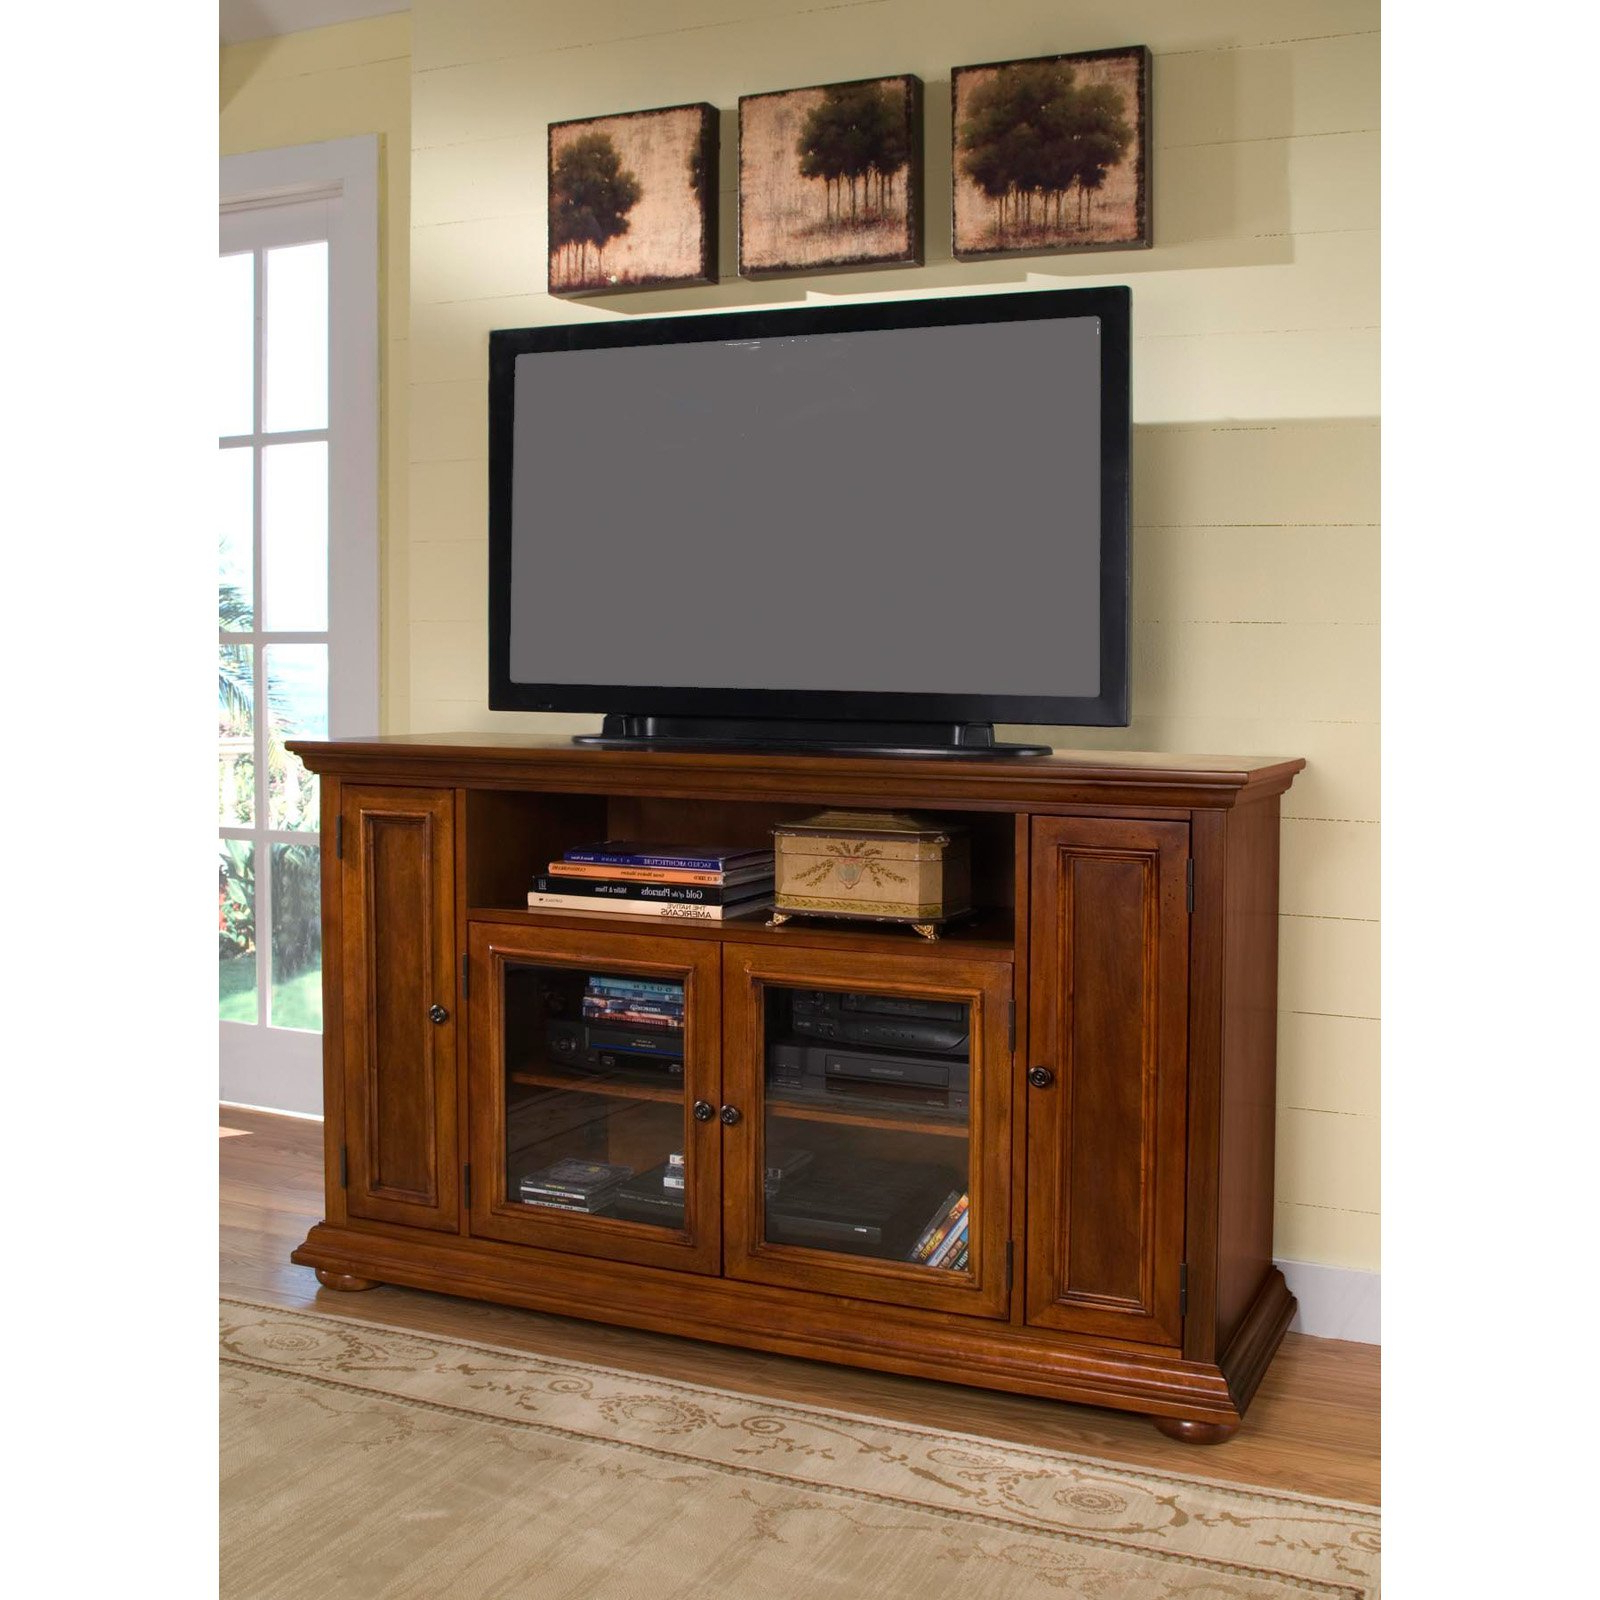 Light Brown Pine Wood Tv Stand With Storage Shelf Of Tall Intended For Most Up To Date Light Colored Tv Stands (View 10 of 20)